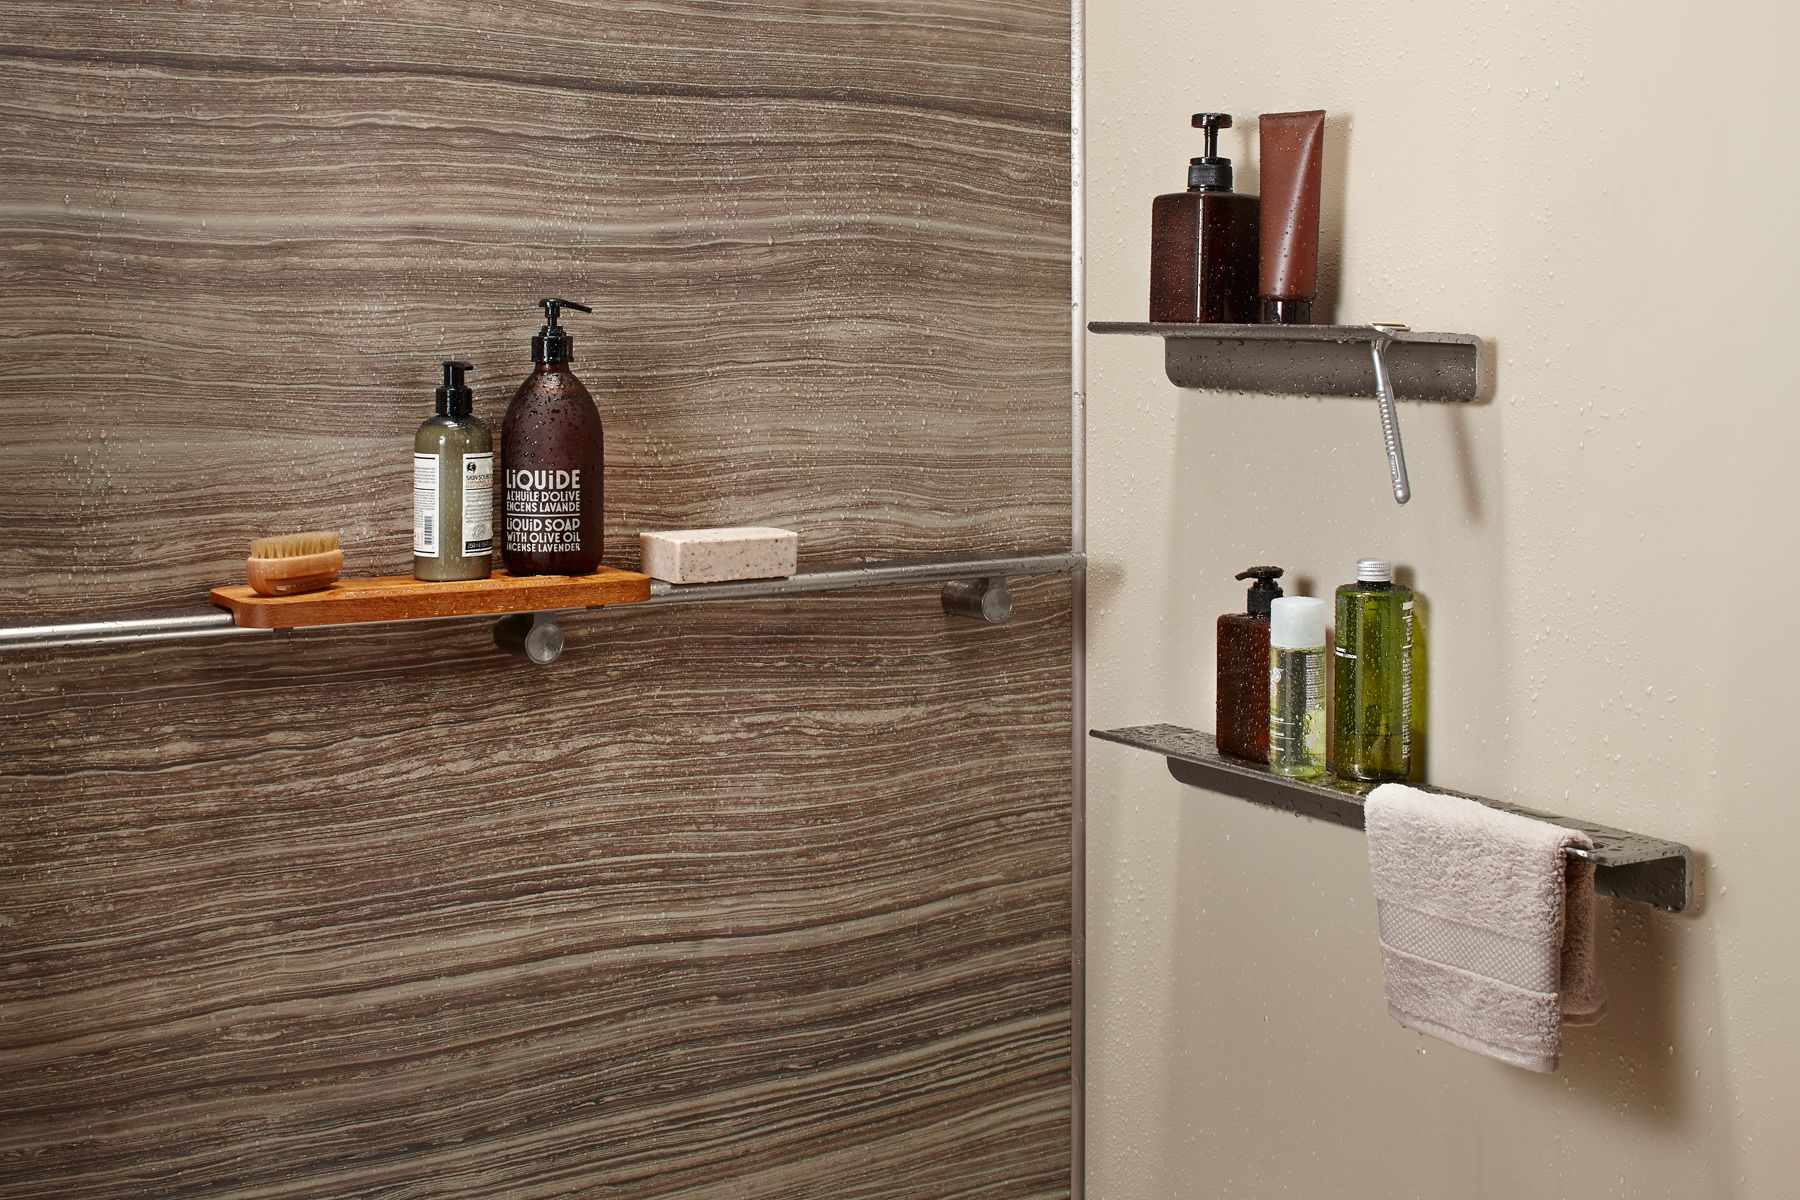 shower space walls bases guides